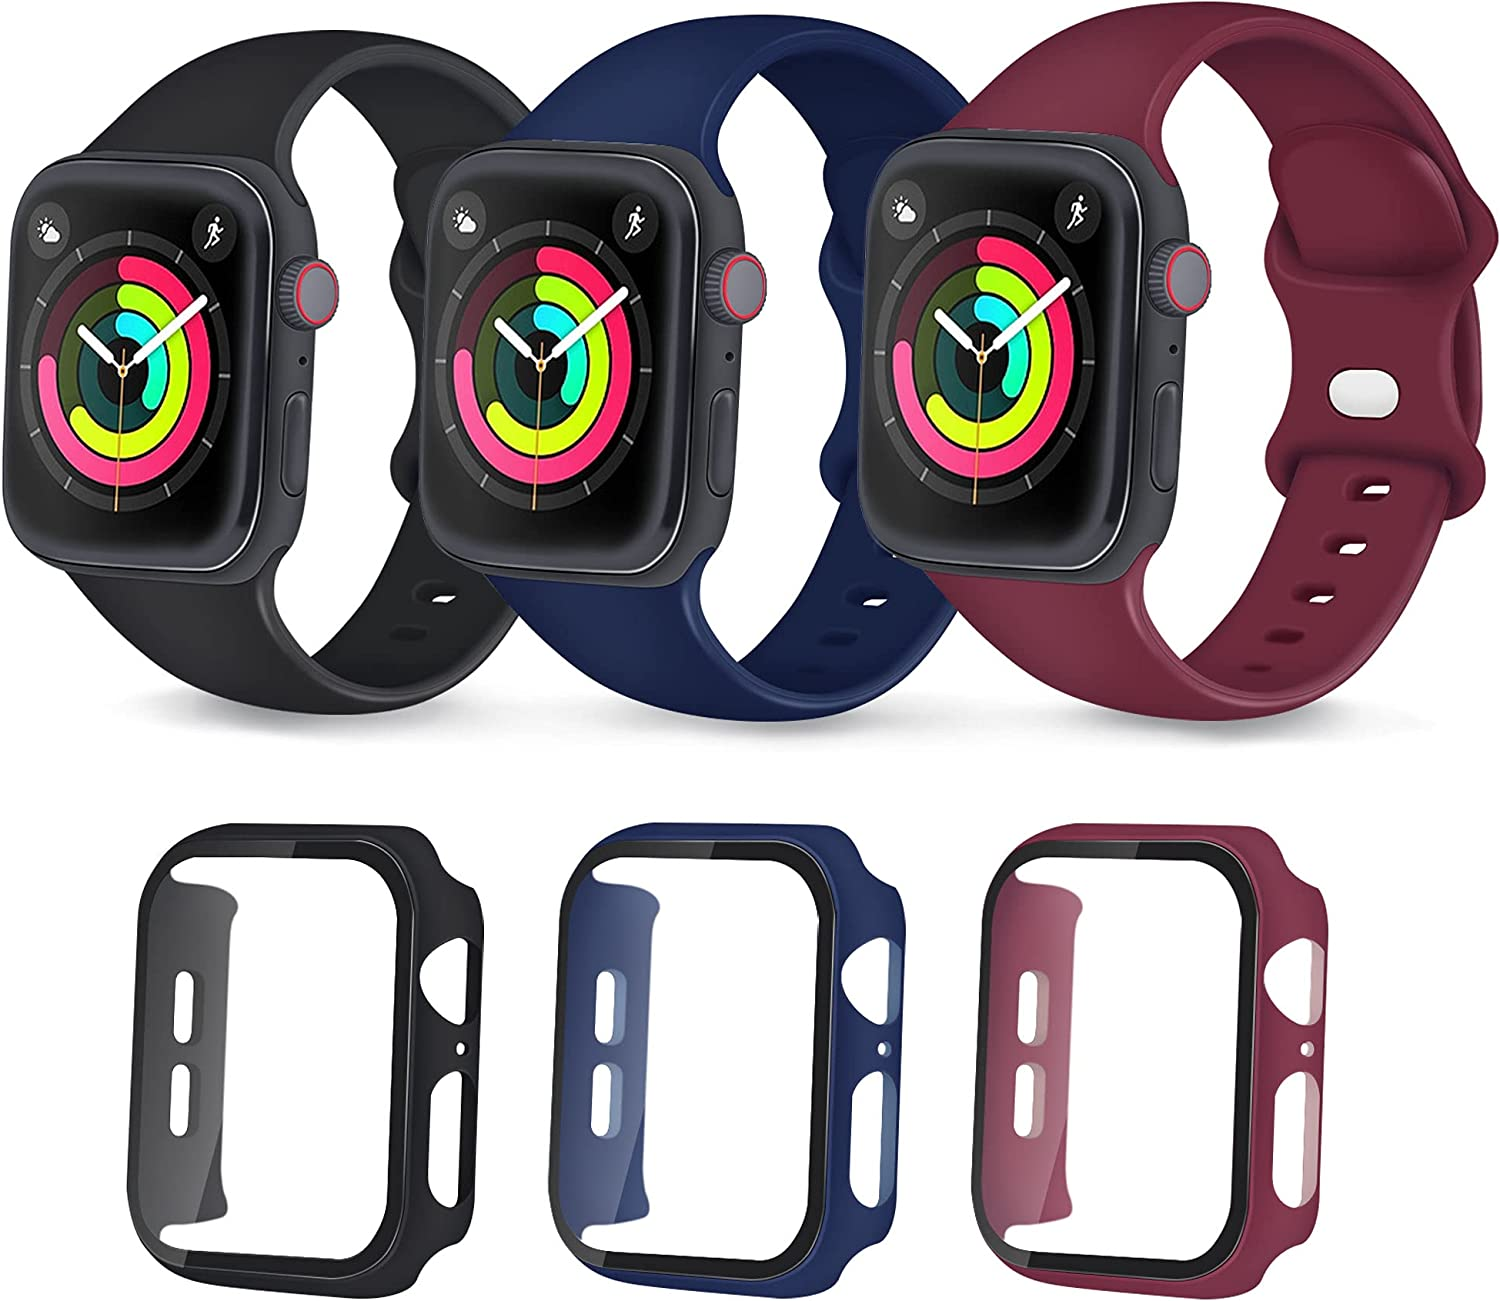 BRHE Sport Band Compatible with Apple Watch 44mm 42mm 38mm 40mm Men Women with PC Case Kit Waterproof Silicone Replace Strap for iWatch Series 6 5 4 3 2 1 SE 3 Pack (Black/Navy Blue/Wine Red, 44mm)